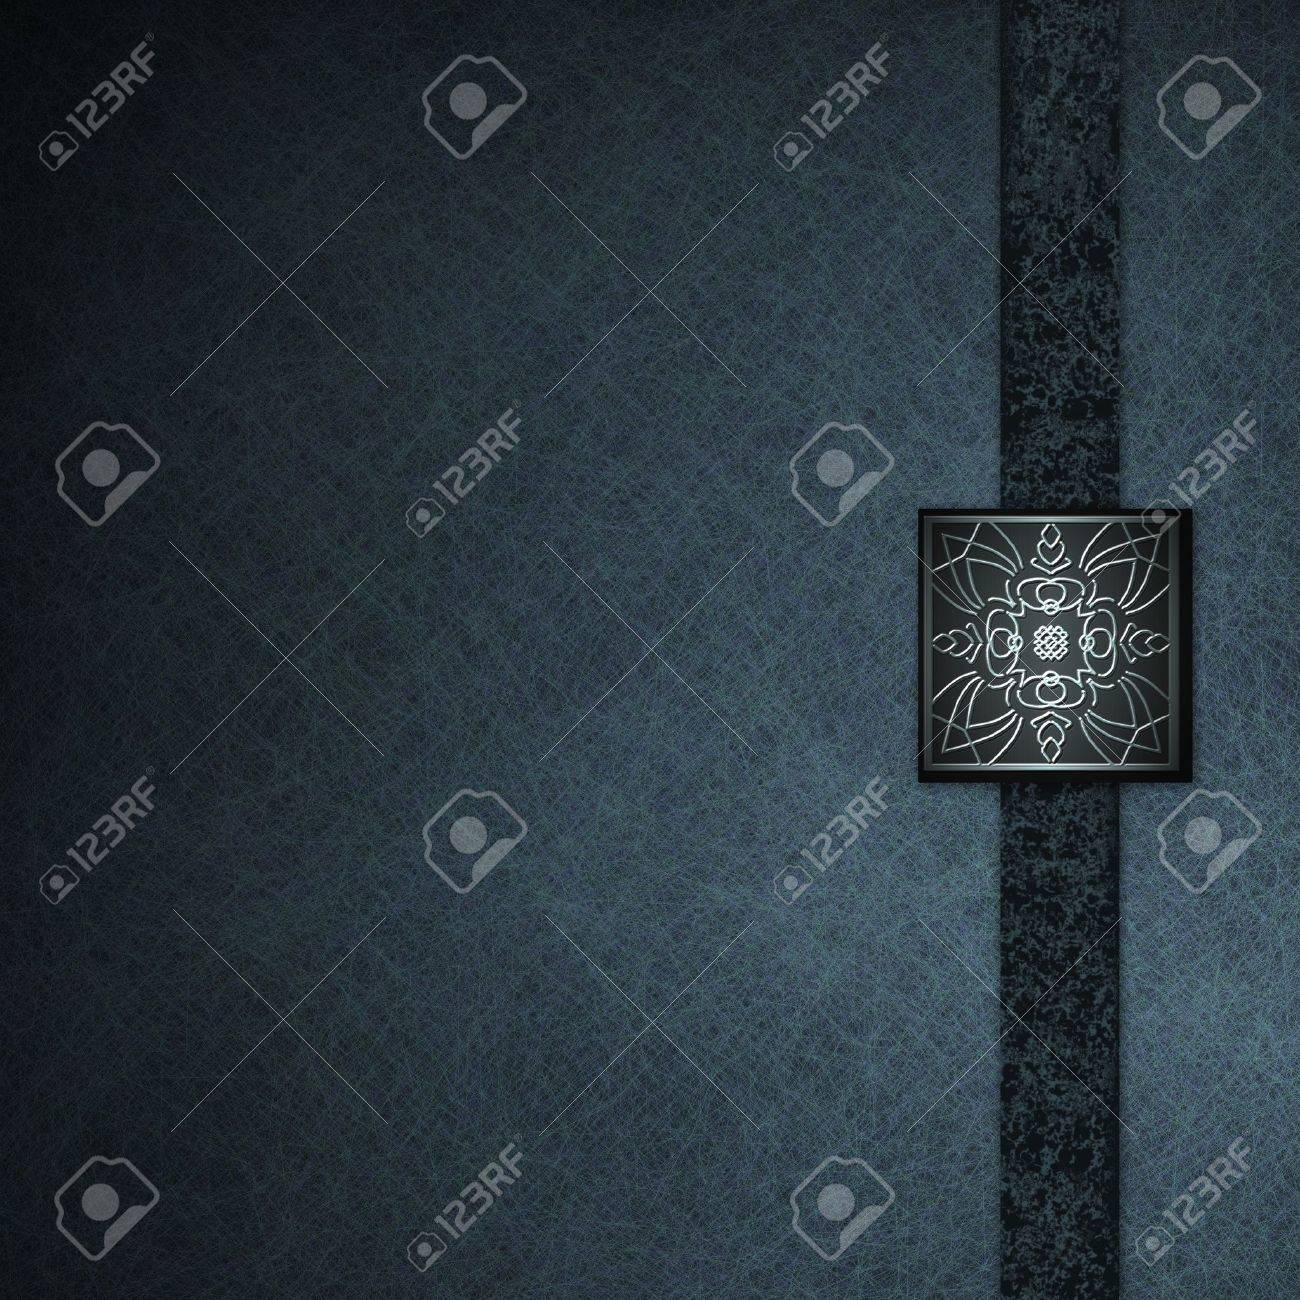 Black and blue parchment background paper with elegant seal design Stock Photo - 10750725